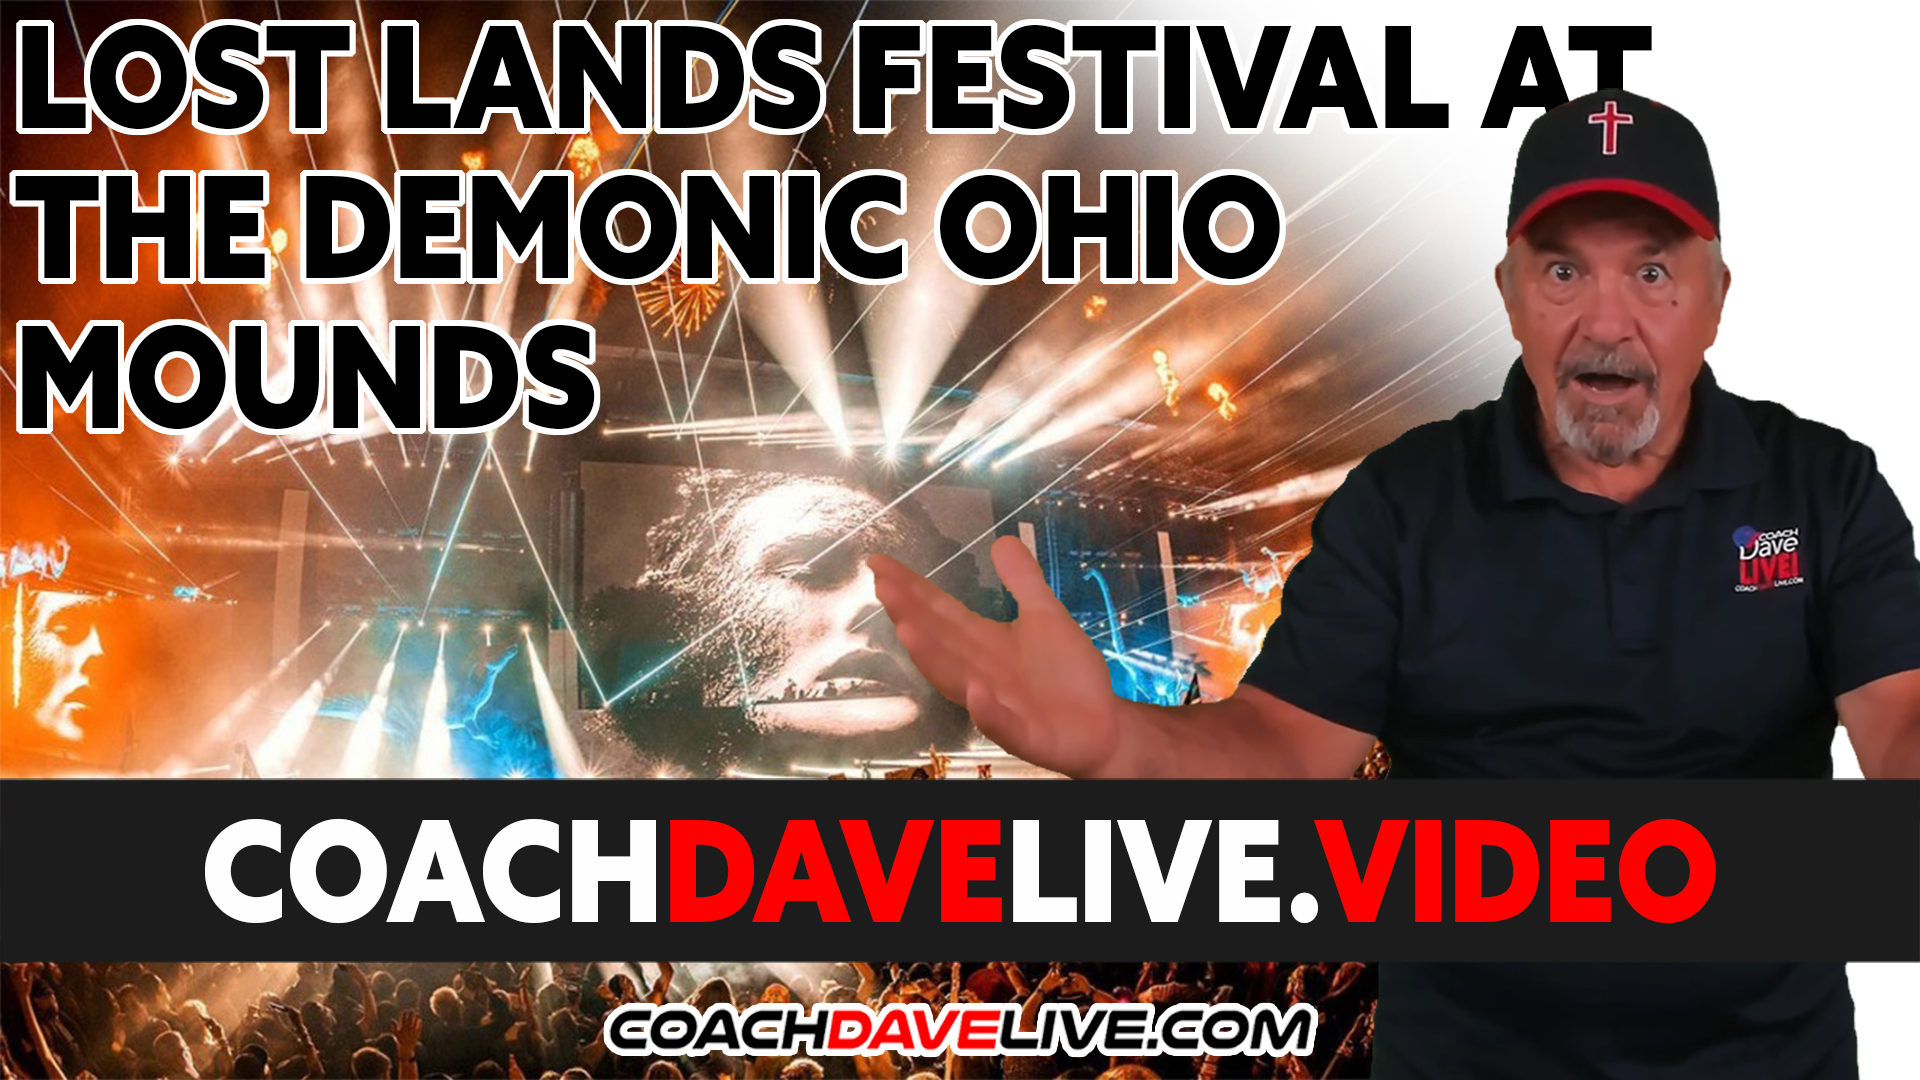 Coach Dave LIVE | 9-20-2021 | LOST LANDS FESTIVAL AT THE DEMONIC OHIO MOUNDS